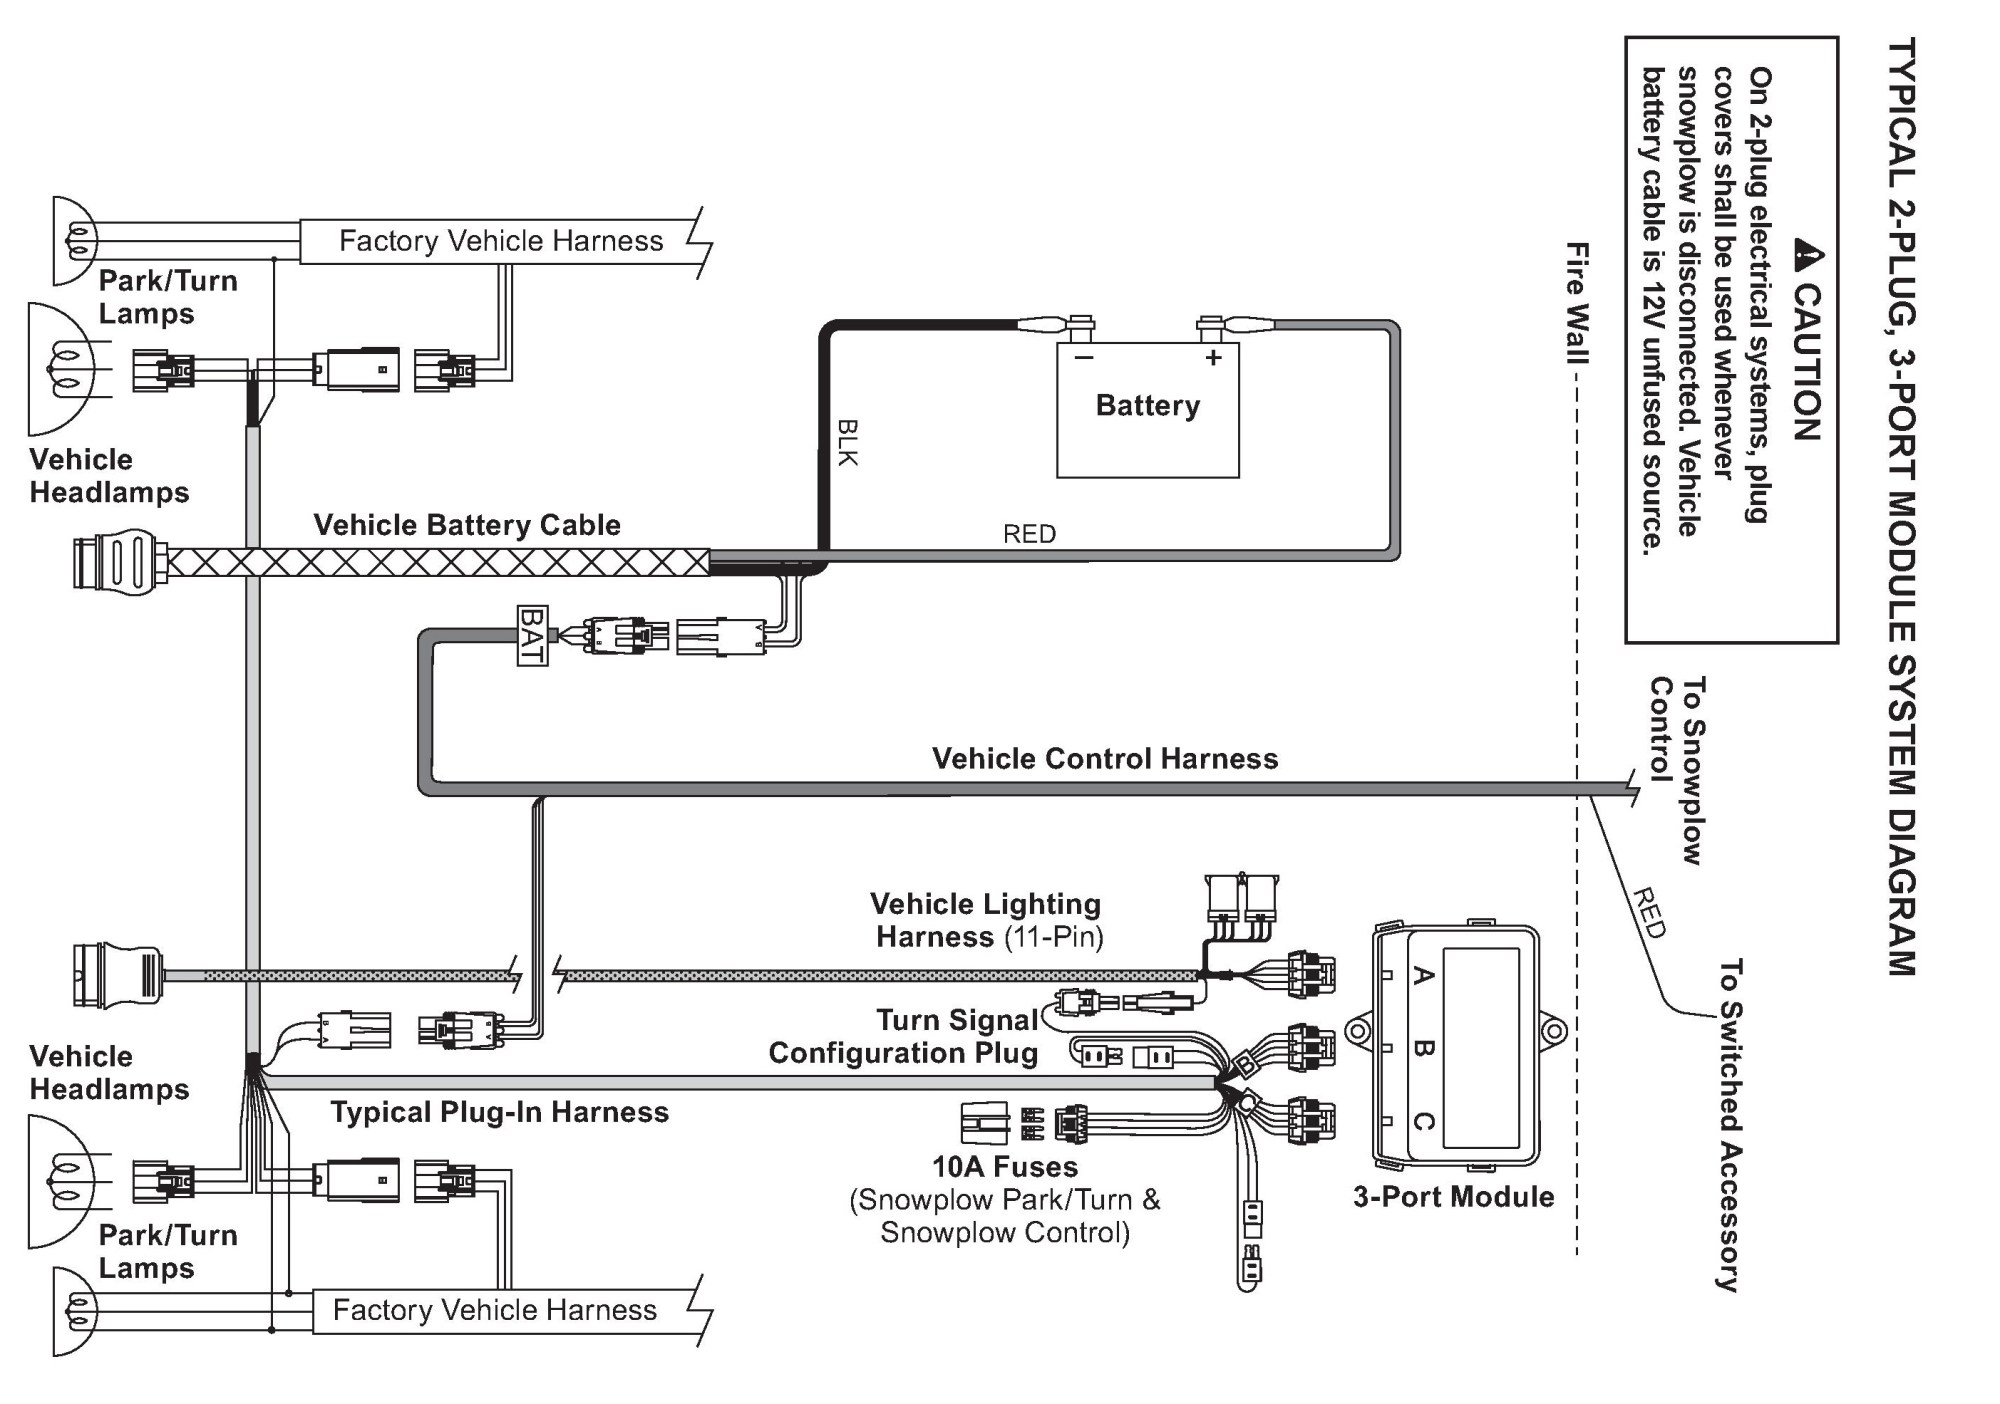 hight resolution of 79147 wiring diagram